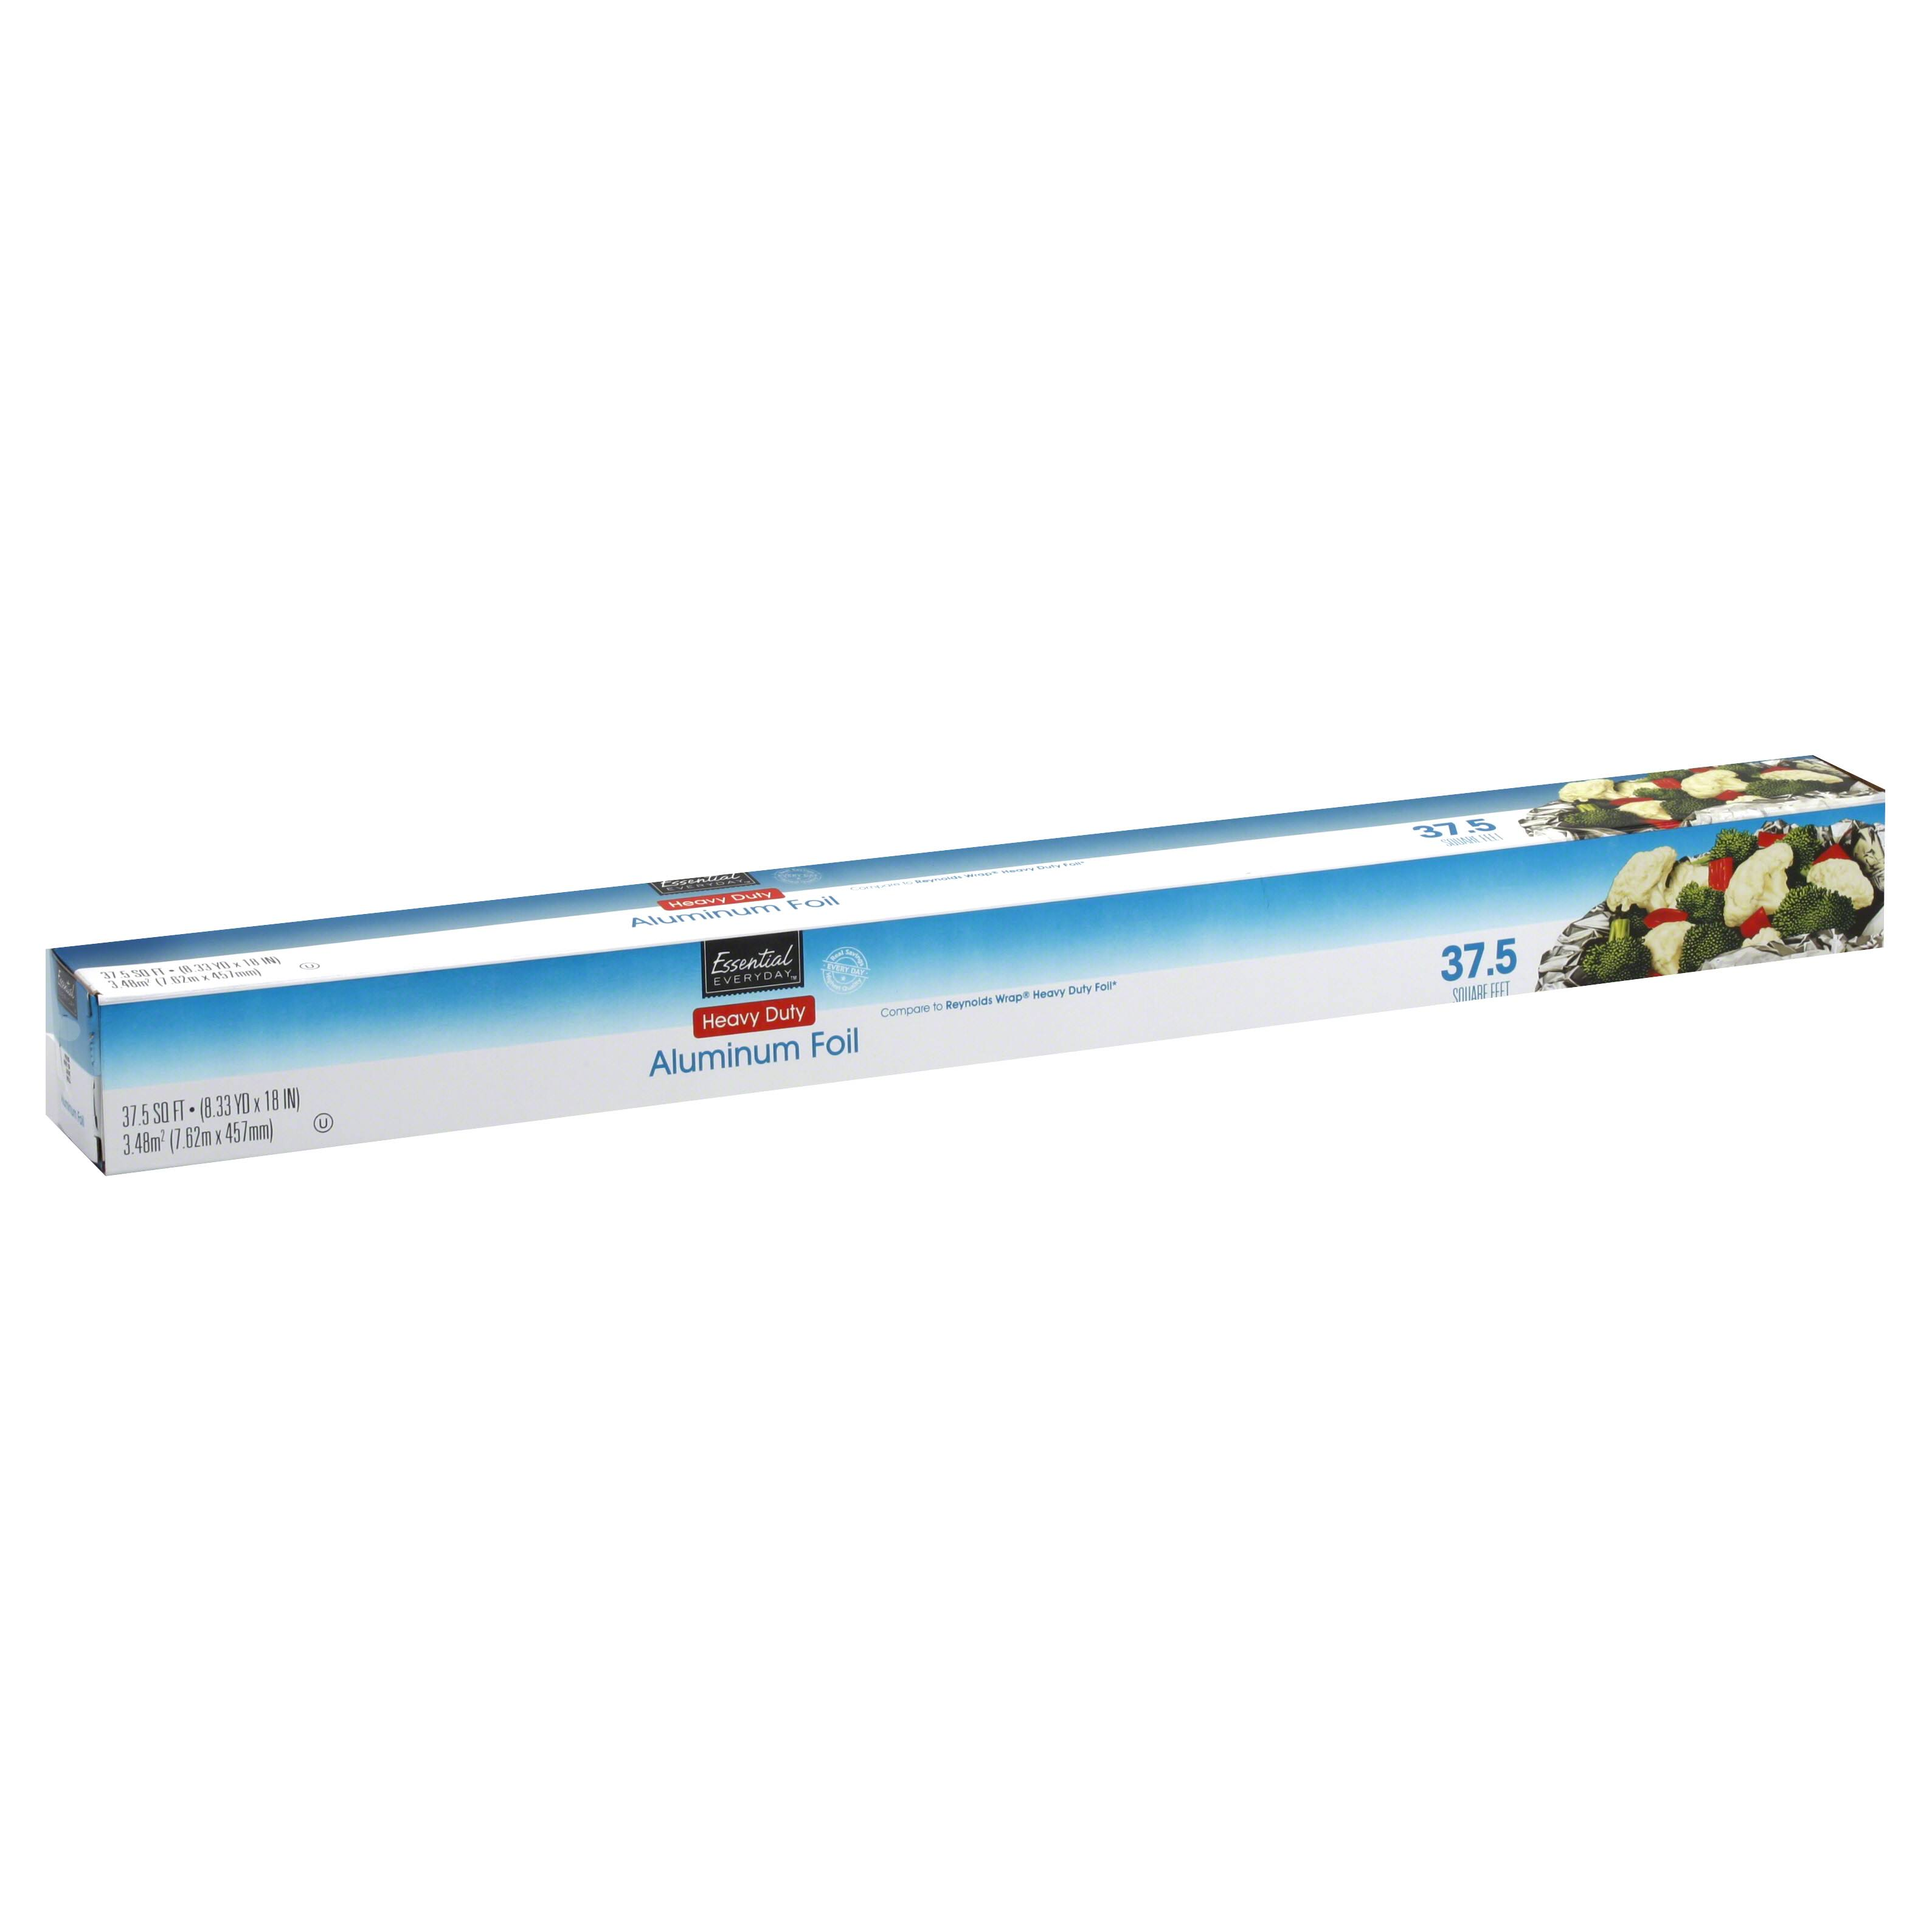 Essential Everyday Aluminum Foil - Heavy Duty, 37.5'